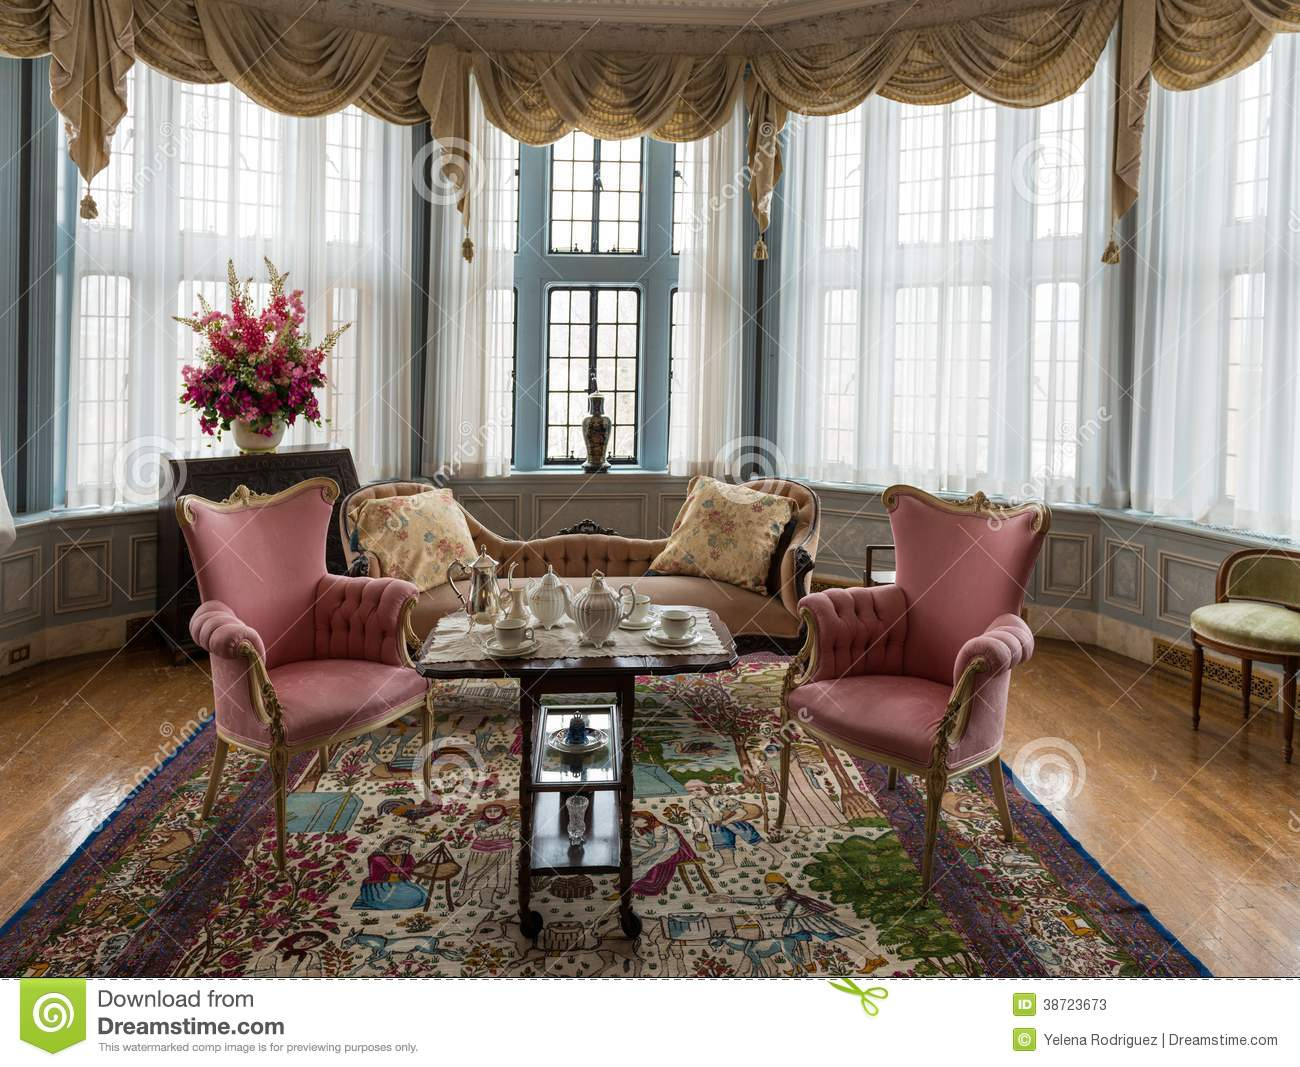 Indoor Decorations At Casa Loma In Toronto Editorial Stock Photo Image 38723673